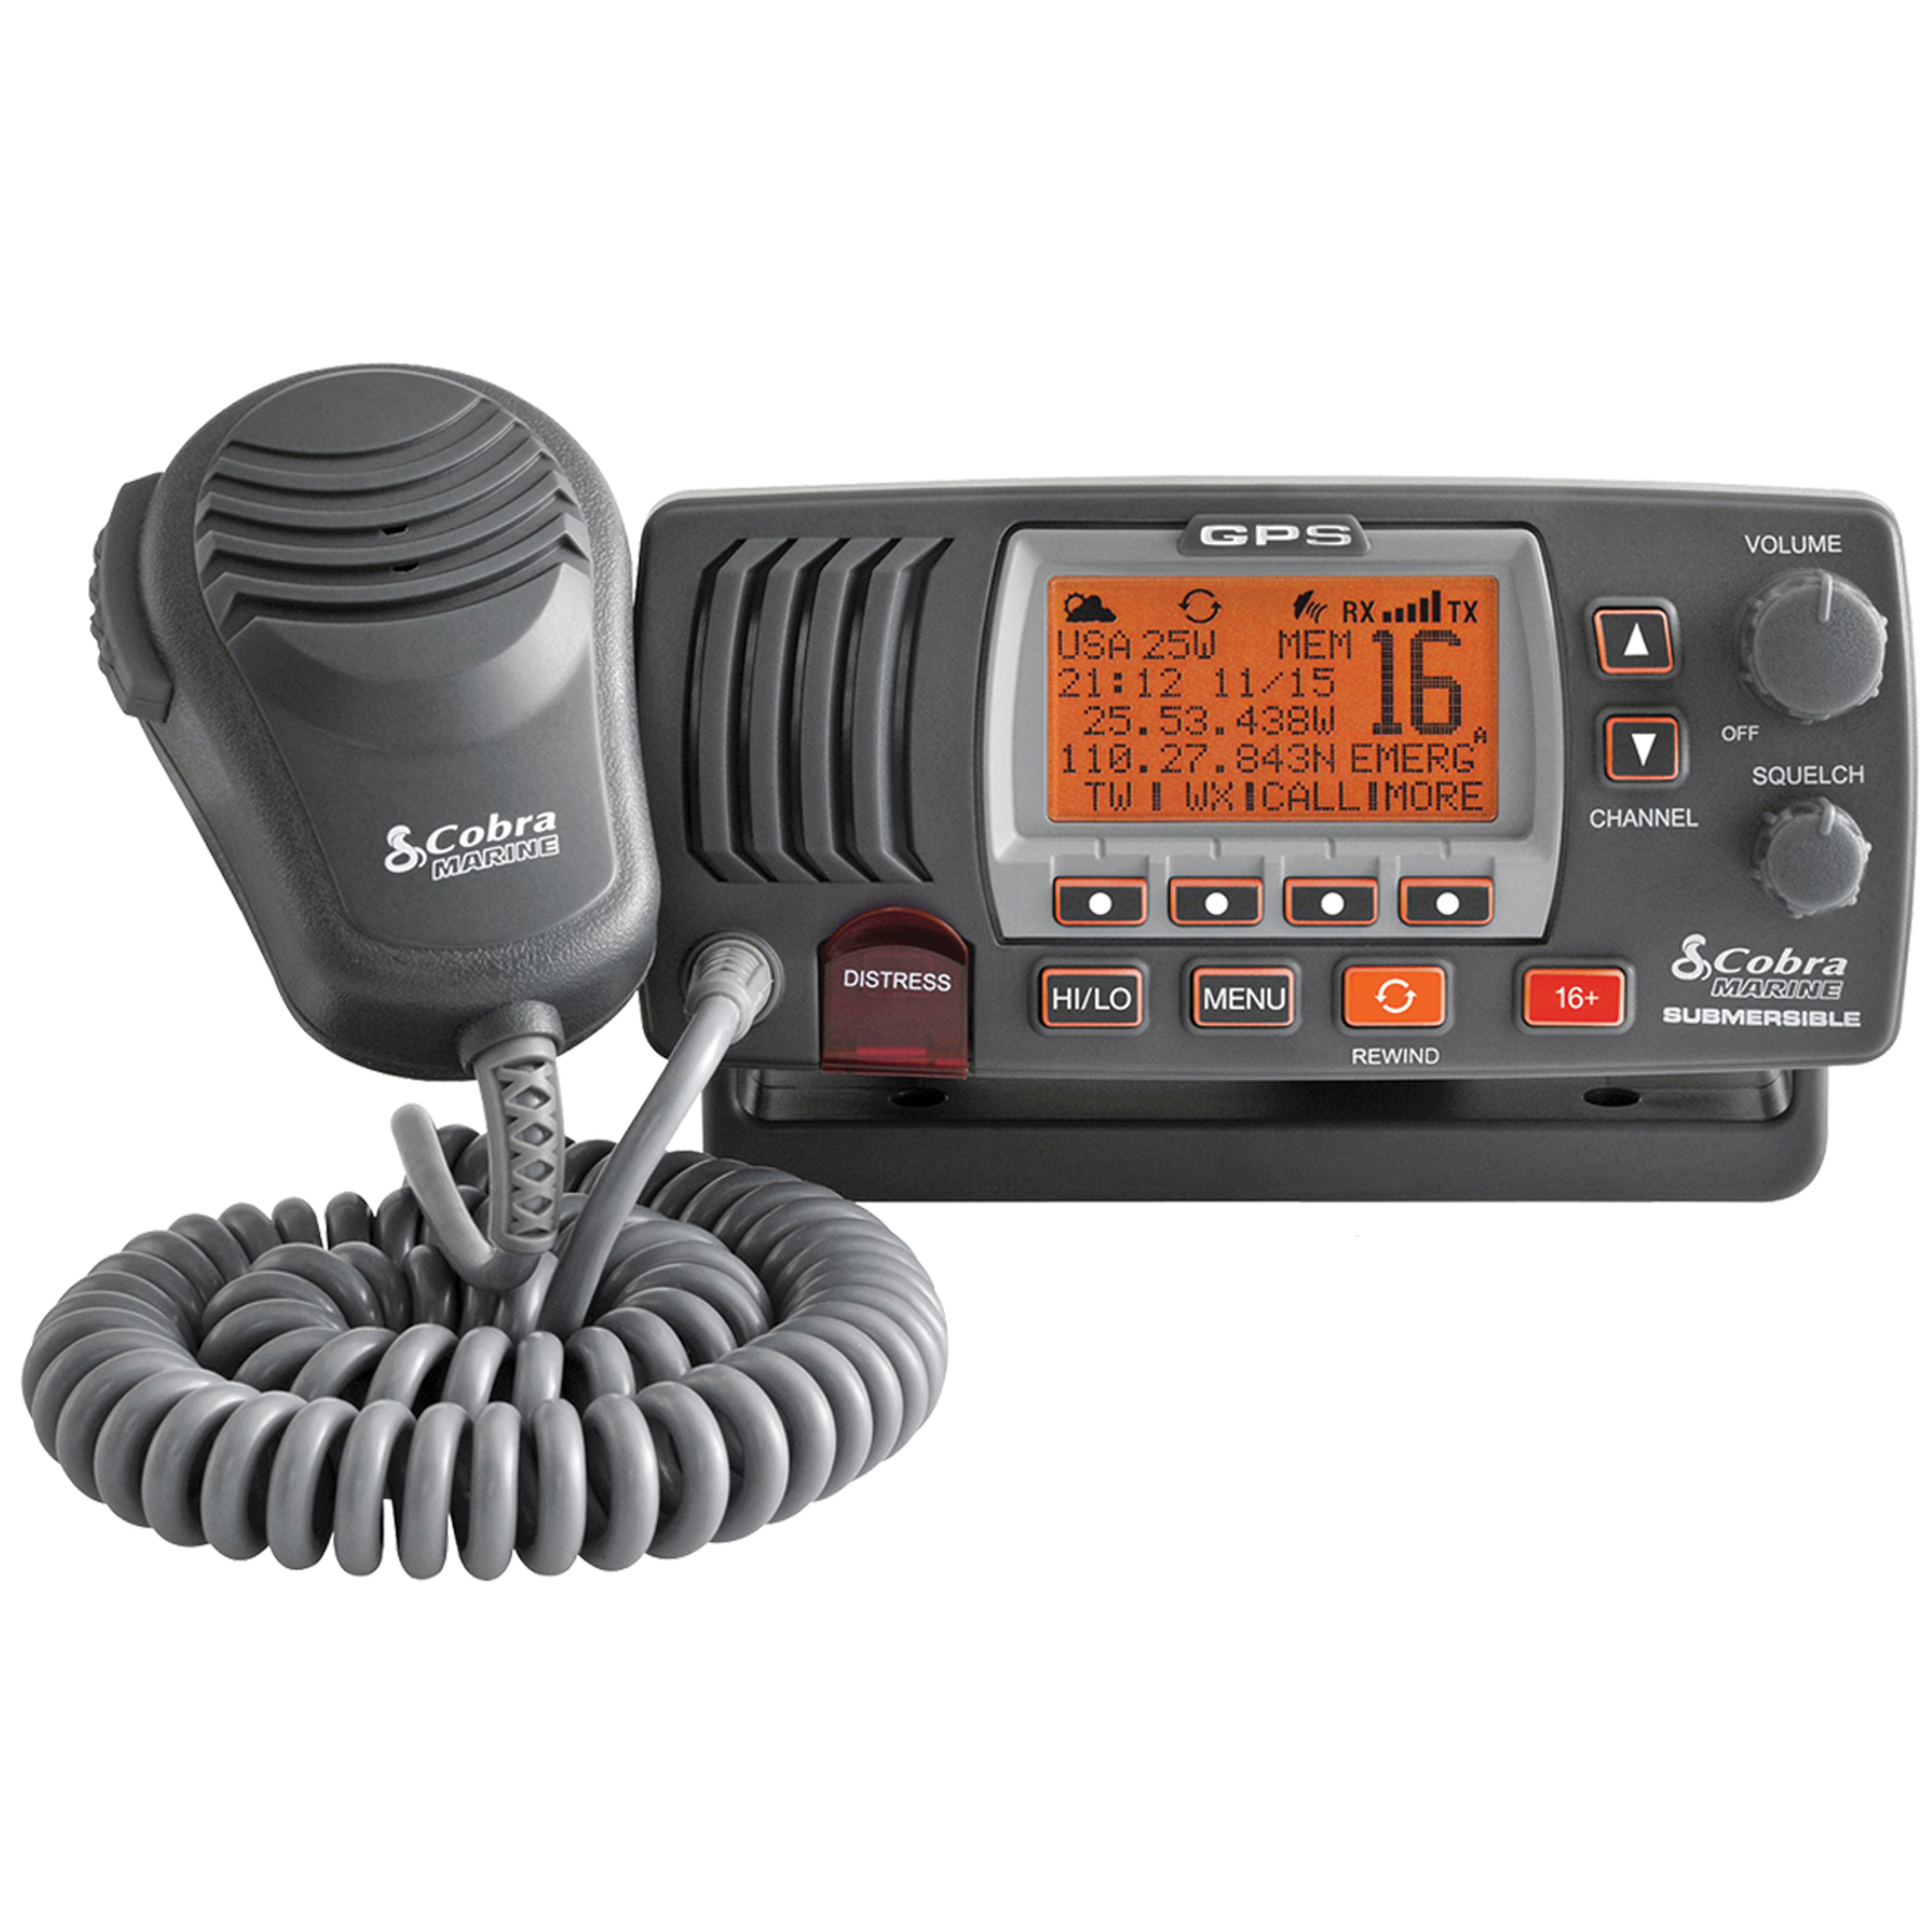 Cobra Electronics Corporation MR F77B GPS Radio Vhf Marine Mr-F77B